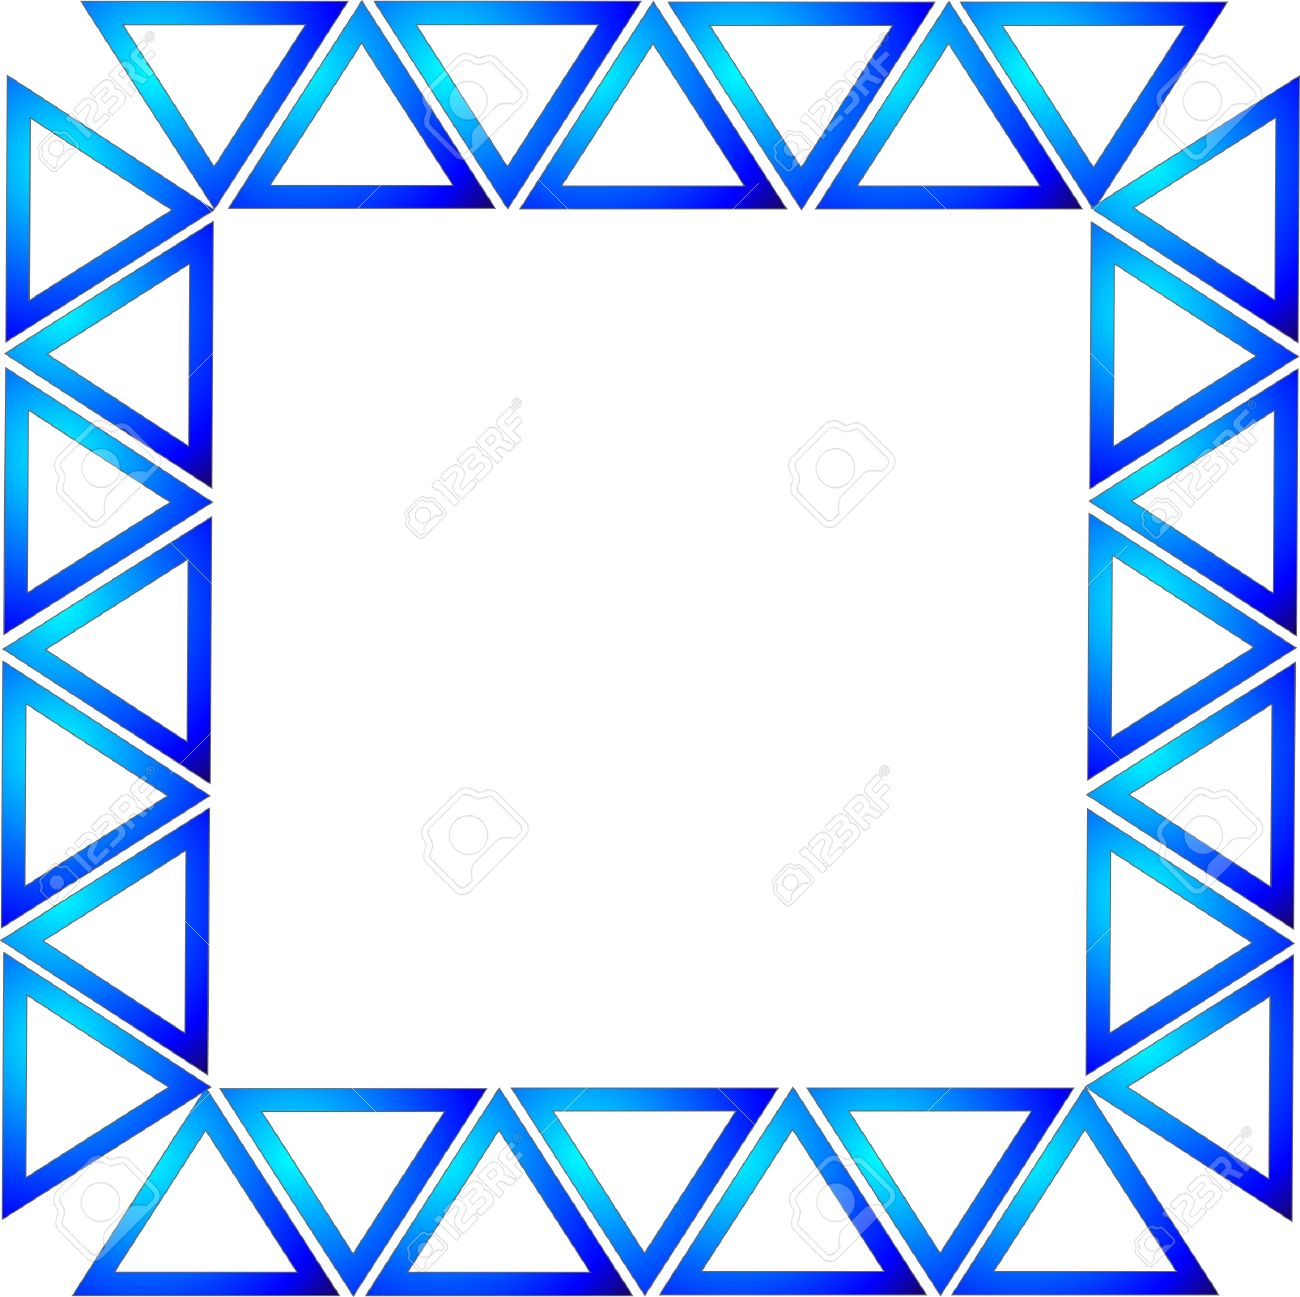 blue gradient triangles formed into a rectangle to make a frame or border background over